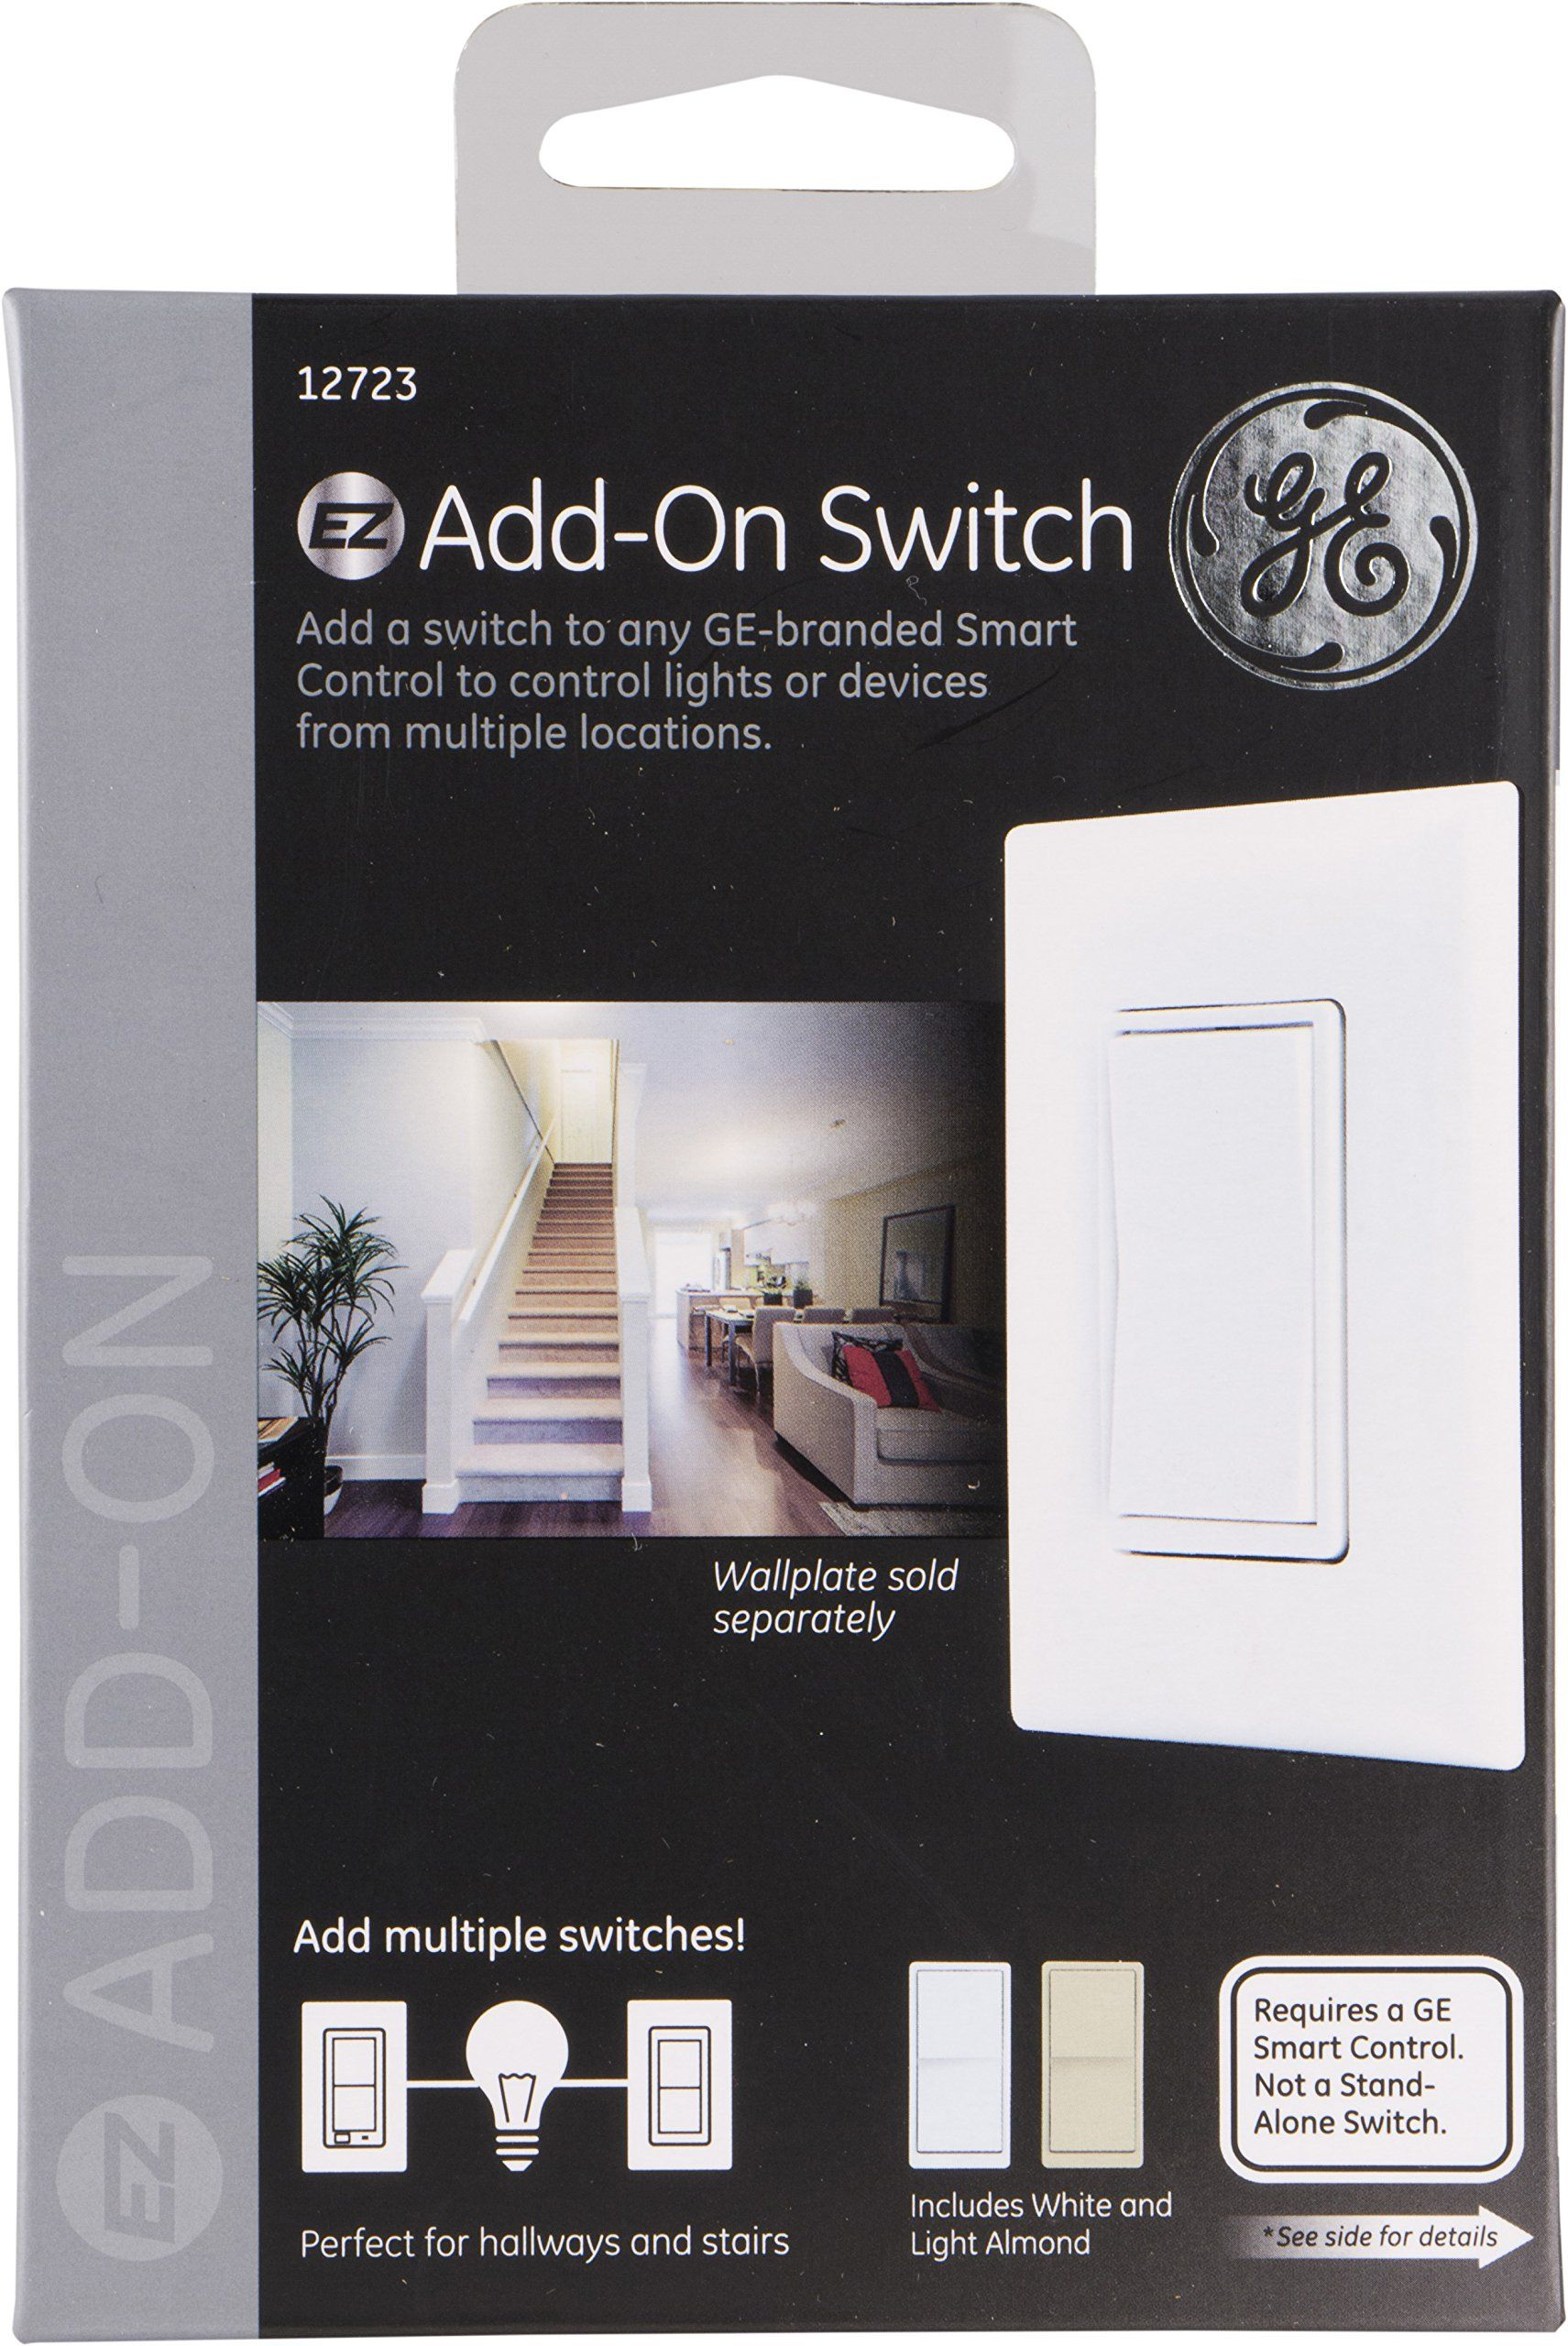 Ge Addon Switch Only For Zwave Zigbee And Bluetooth